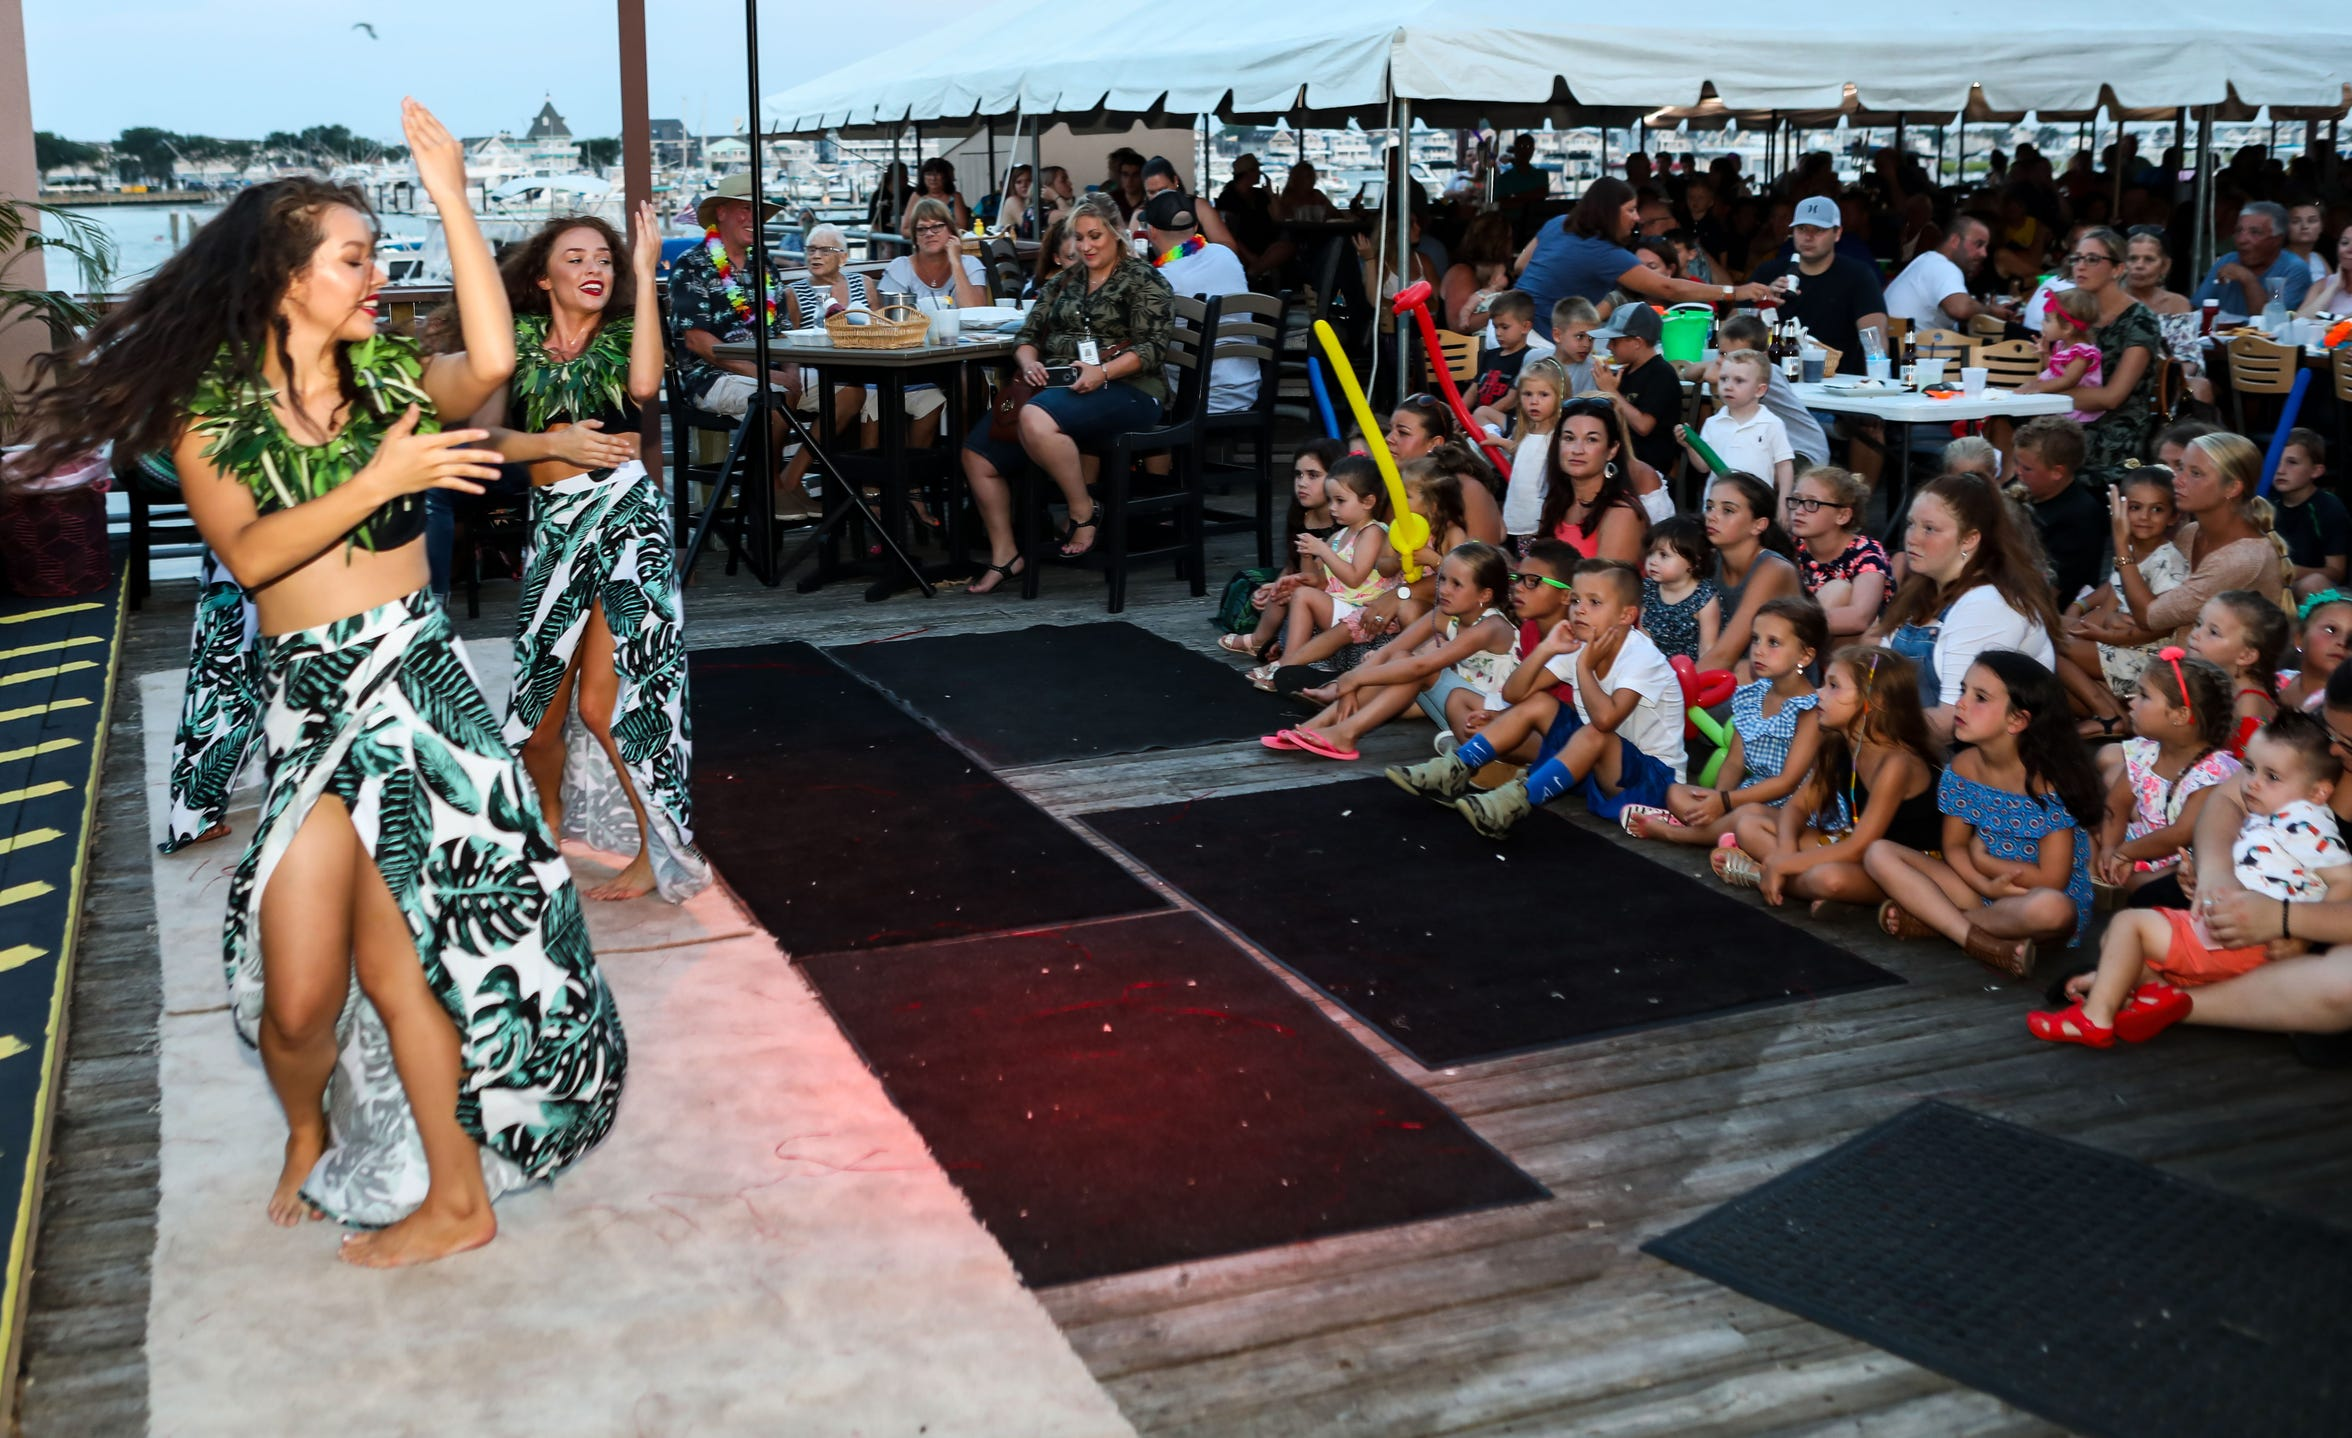 Members of Paradise Island Entertainment,  an authentic Polynesian dance troupe from Williamstown, NJ, perform at Toll Man Joe's Bayside in Wildwood Crest, NJ, on Monday,  August 6, 2018.